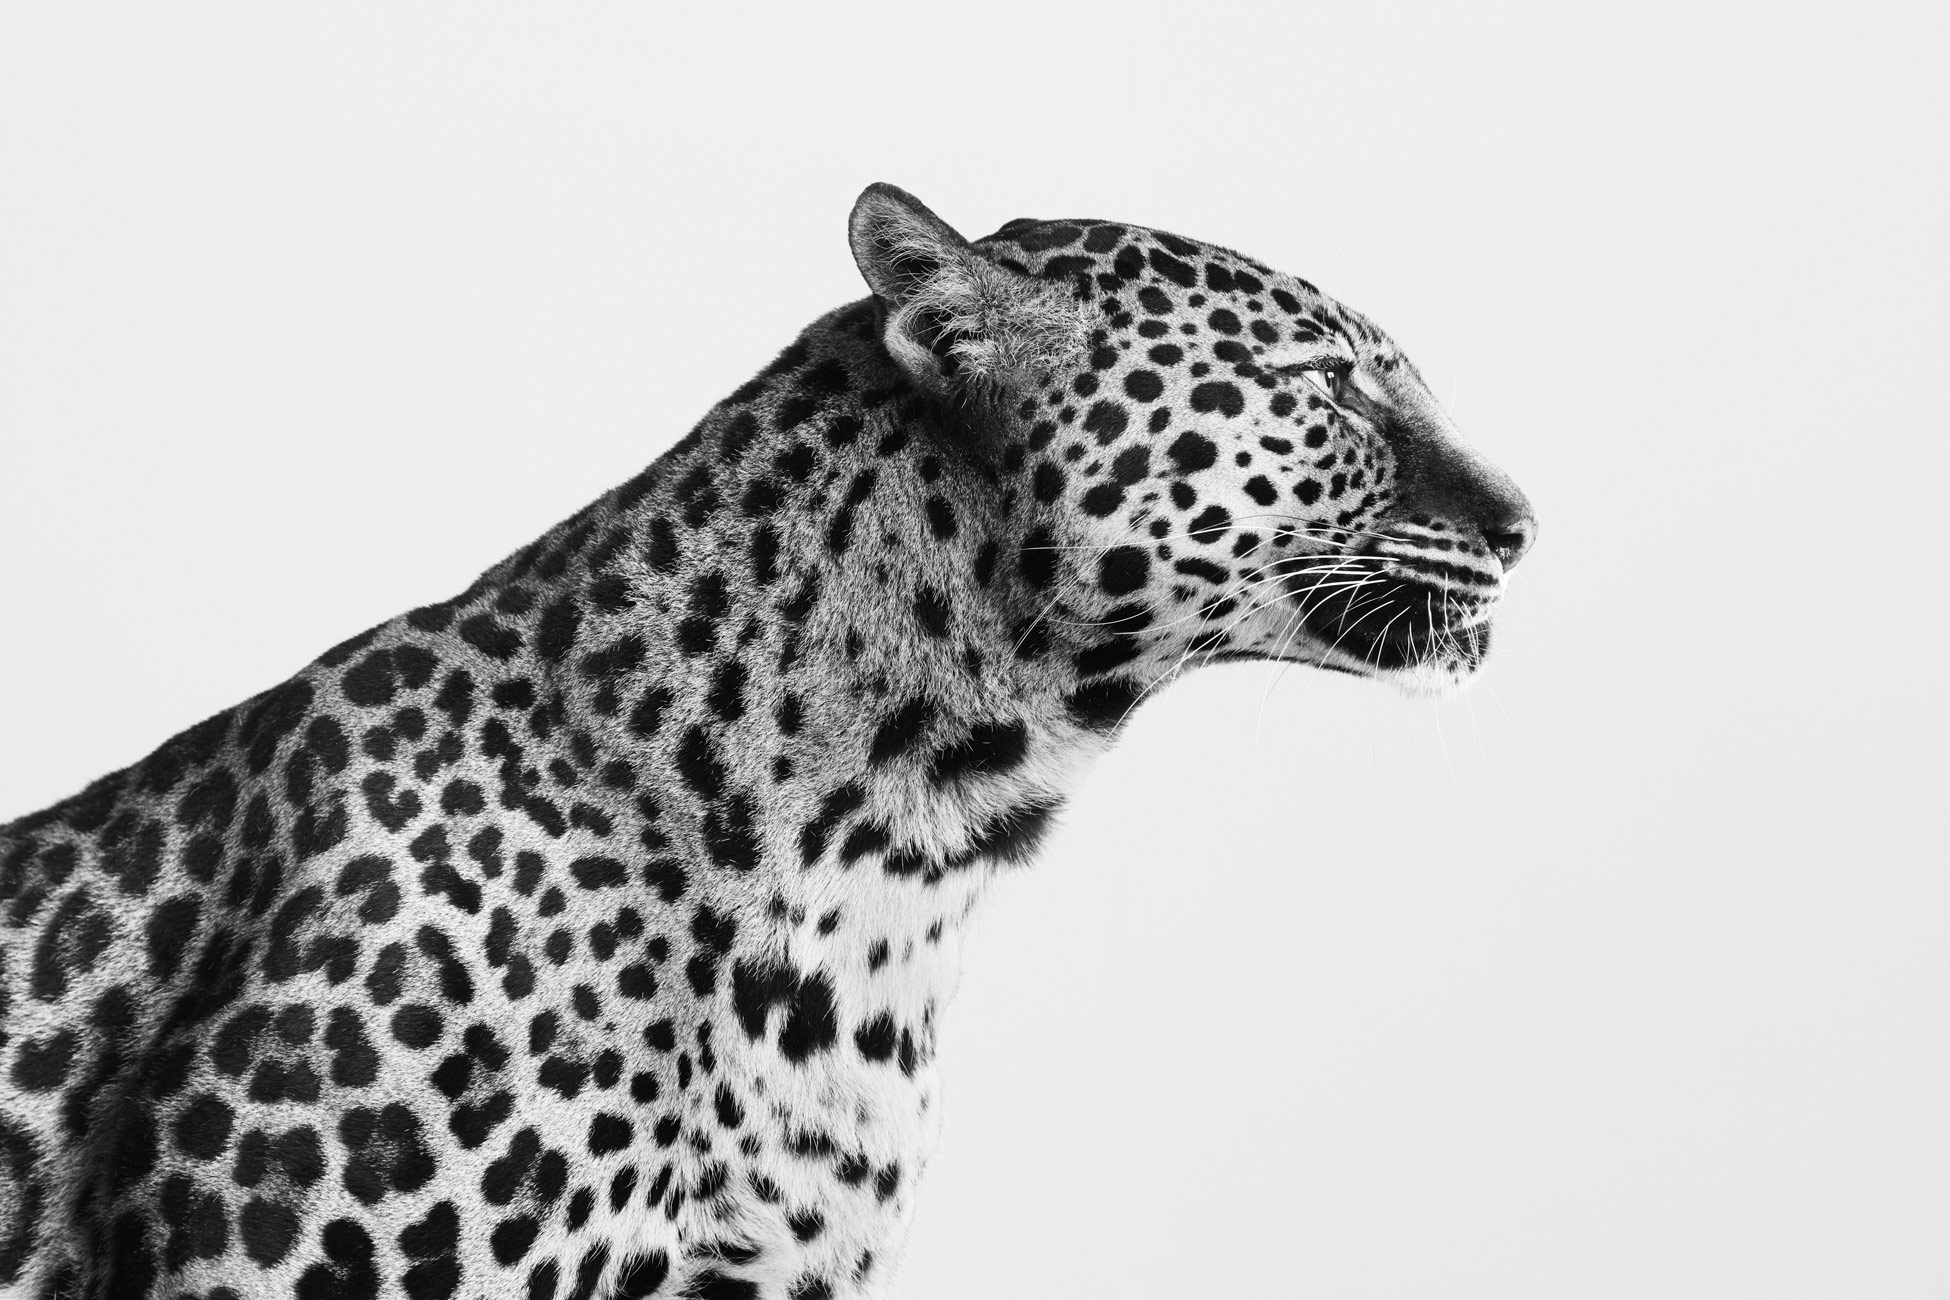 Spotted_Leopard_01_BW